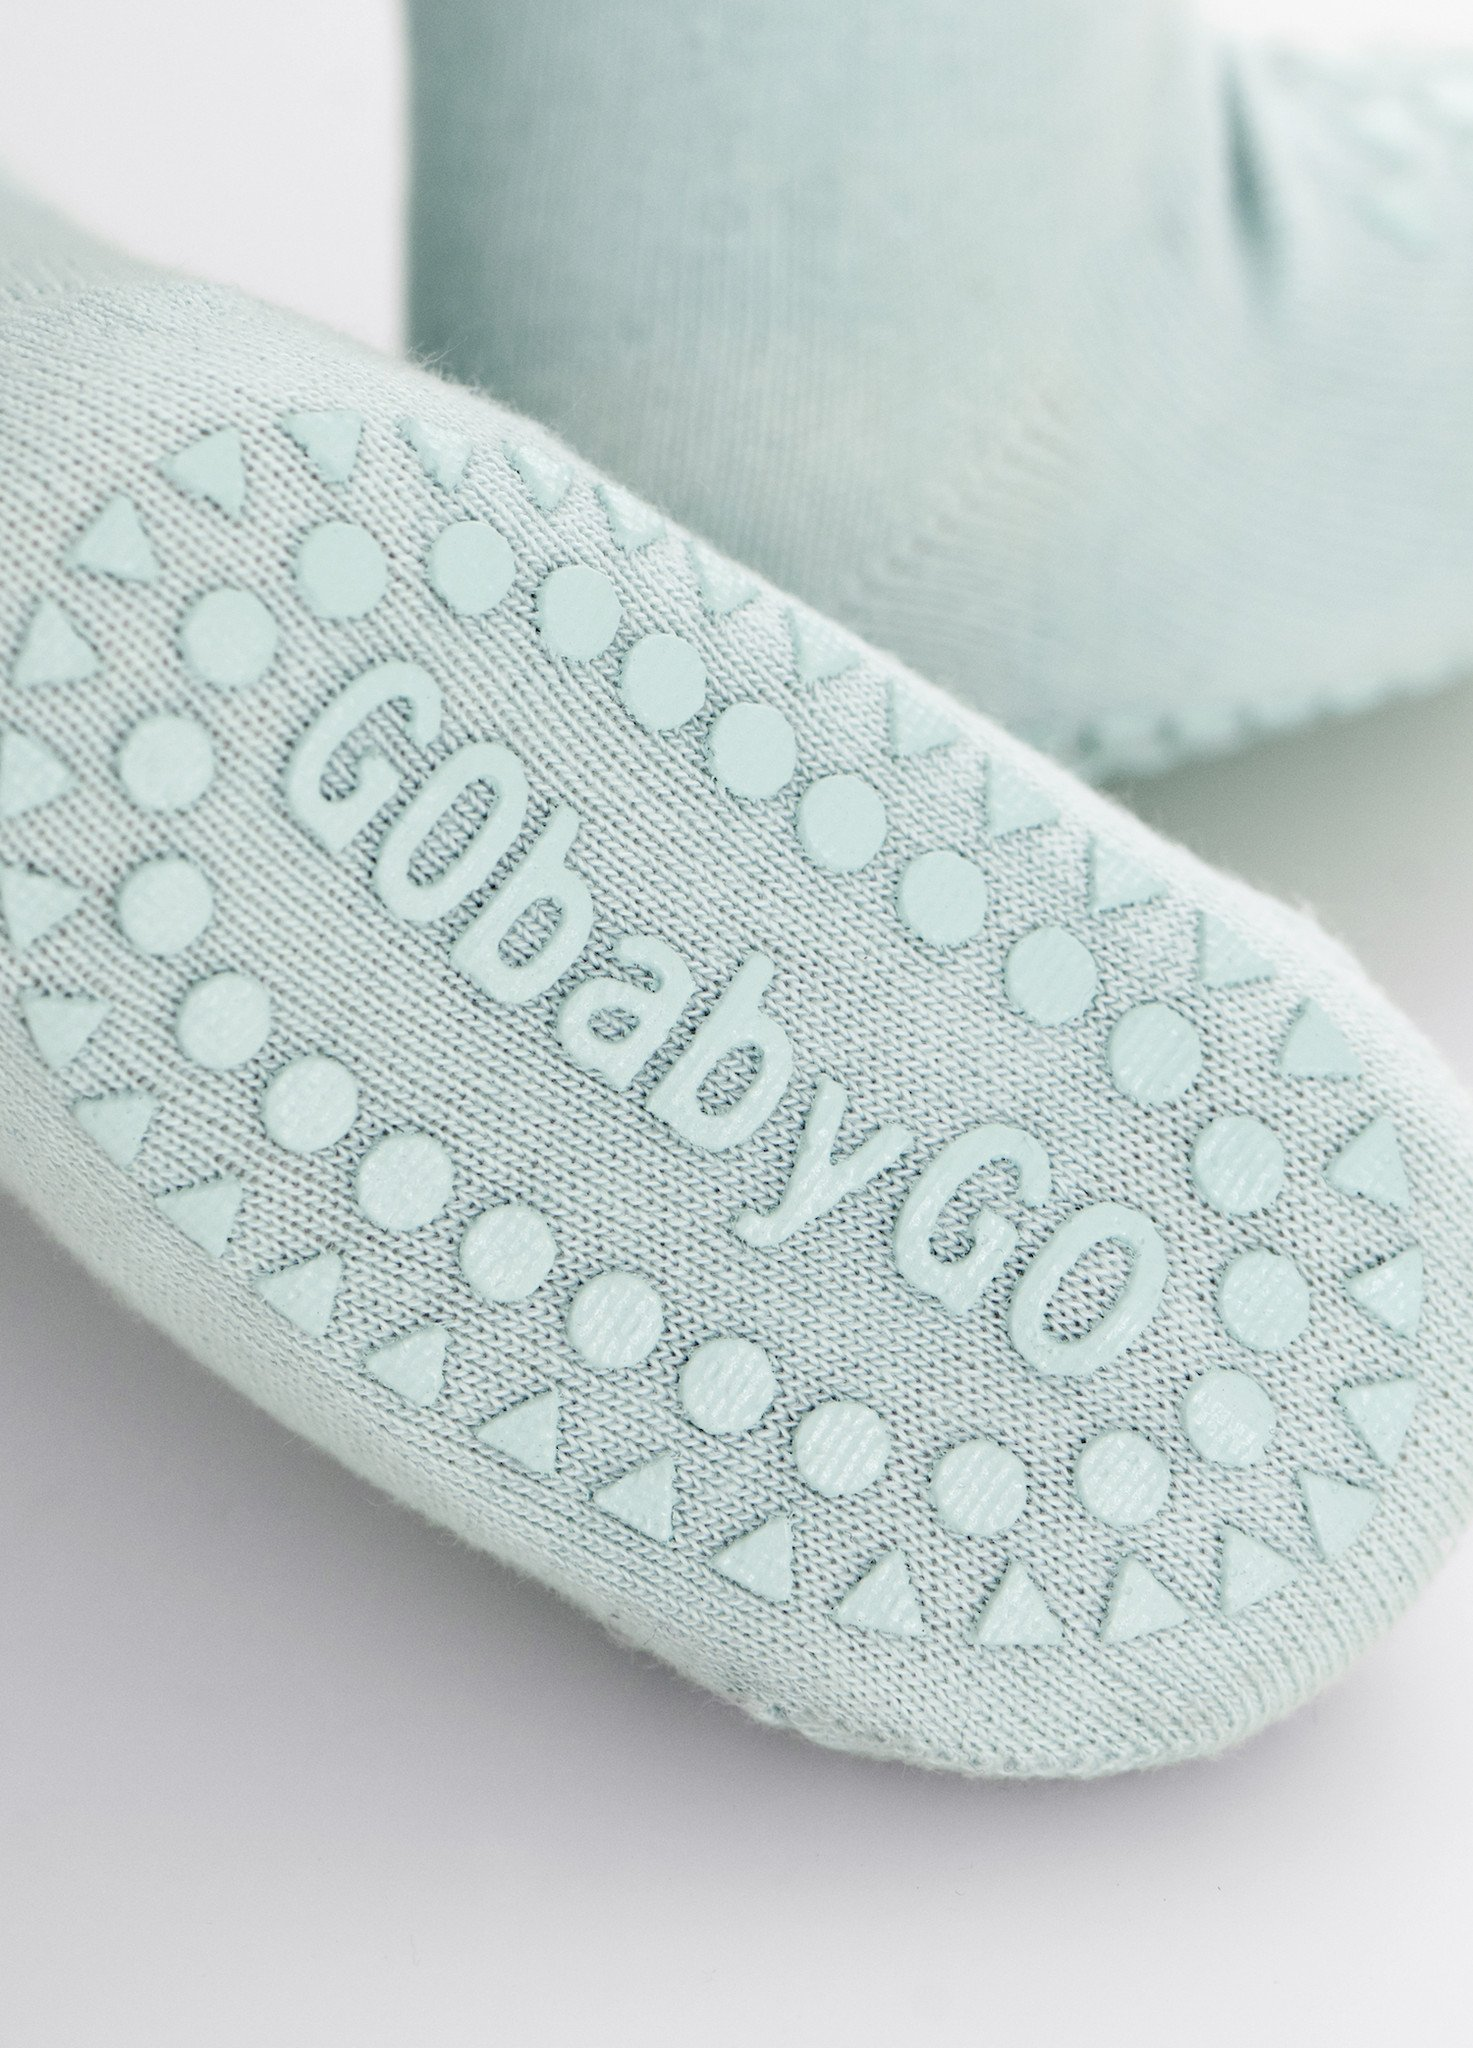 GoBabyGo MintGreen Socks Close Up Copy